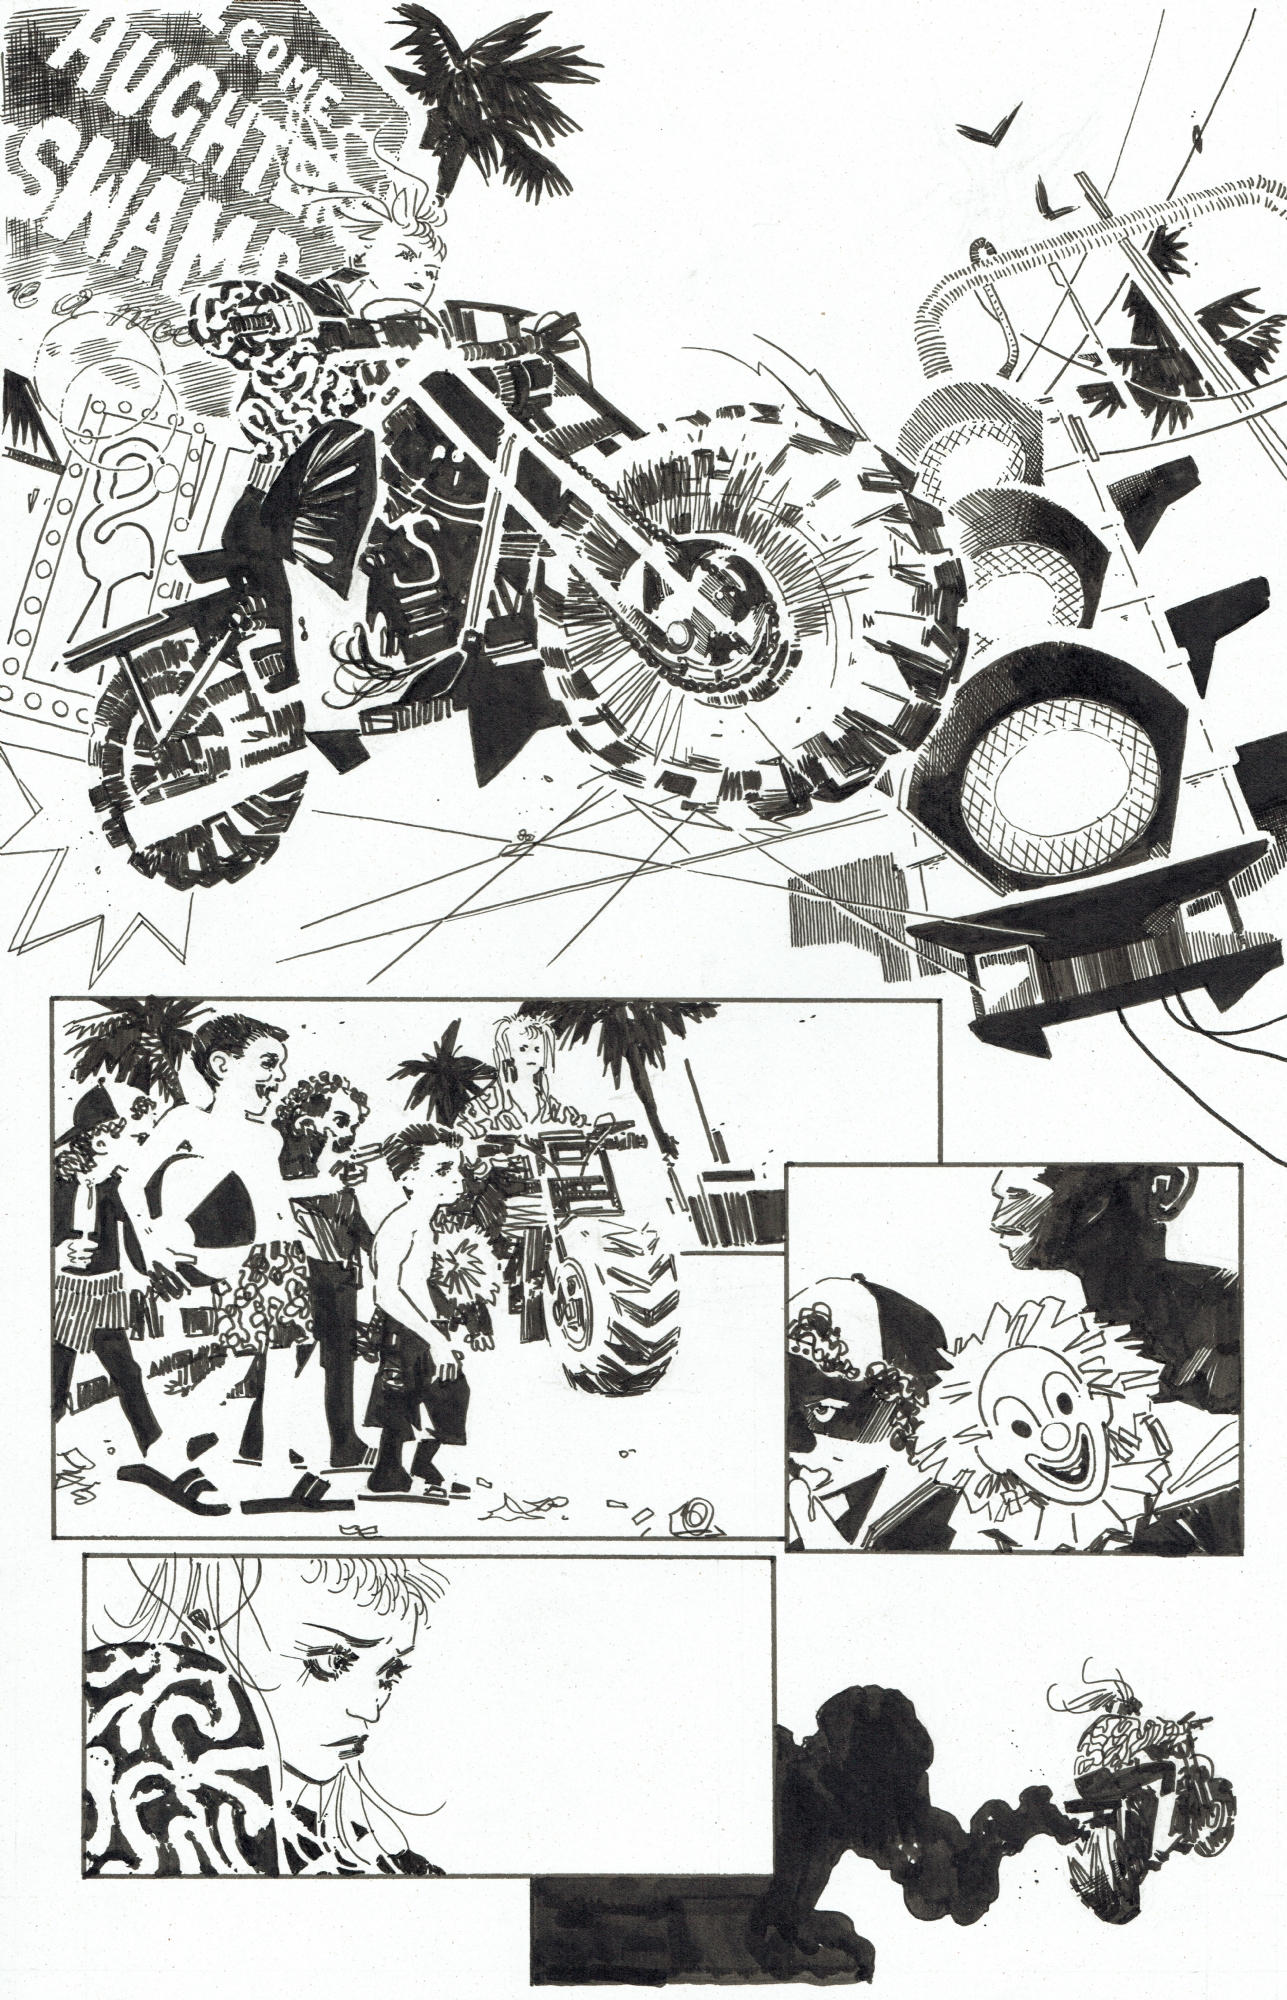 Harley Quinn Black White Red Issue 10 Page 2 In Tim Durie S Harley Quinn B W R Comic Art Gallery Room